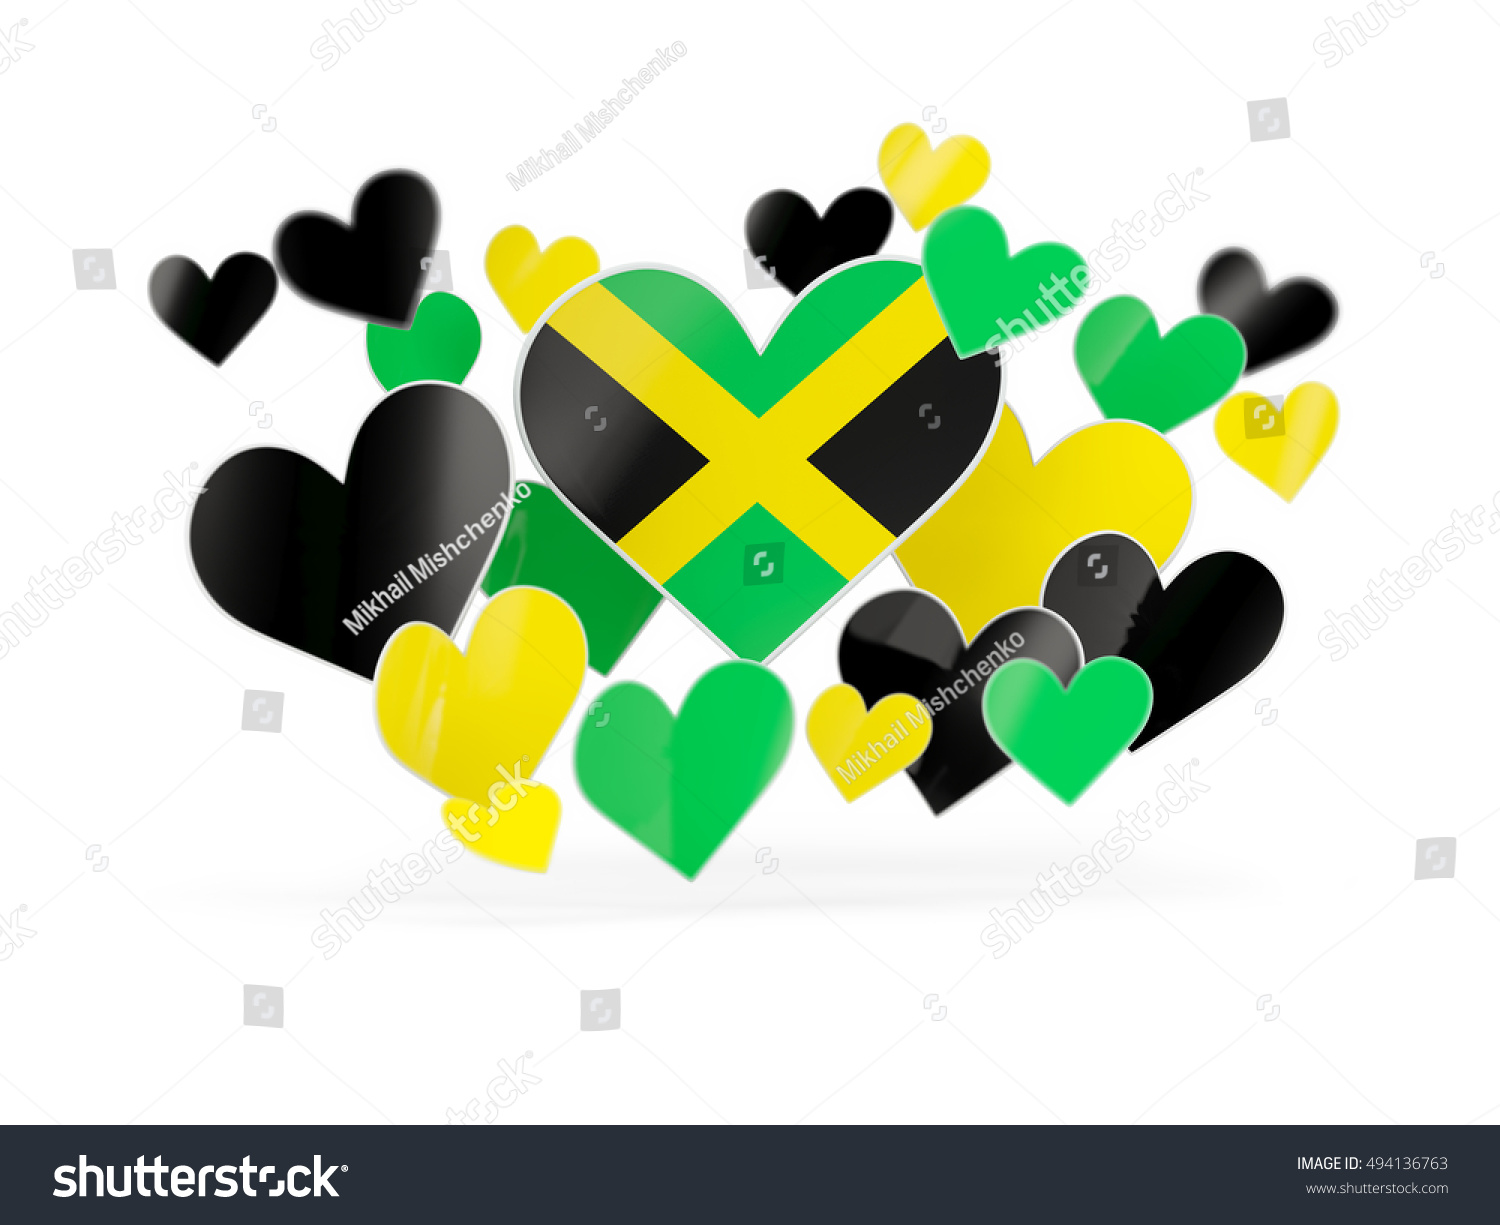 Flag of jamaica heart shaped stickers on white 3d illustration